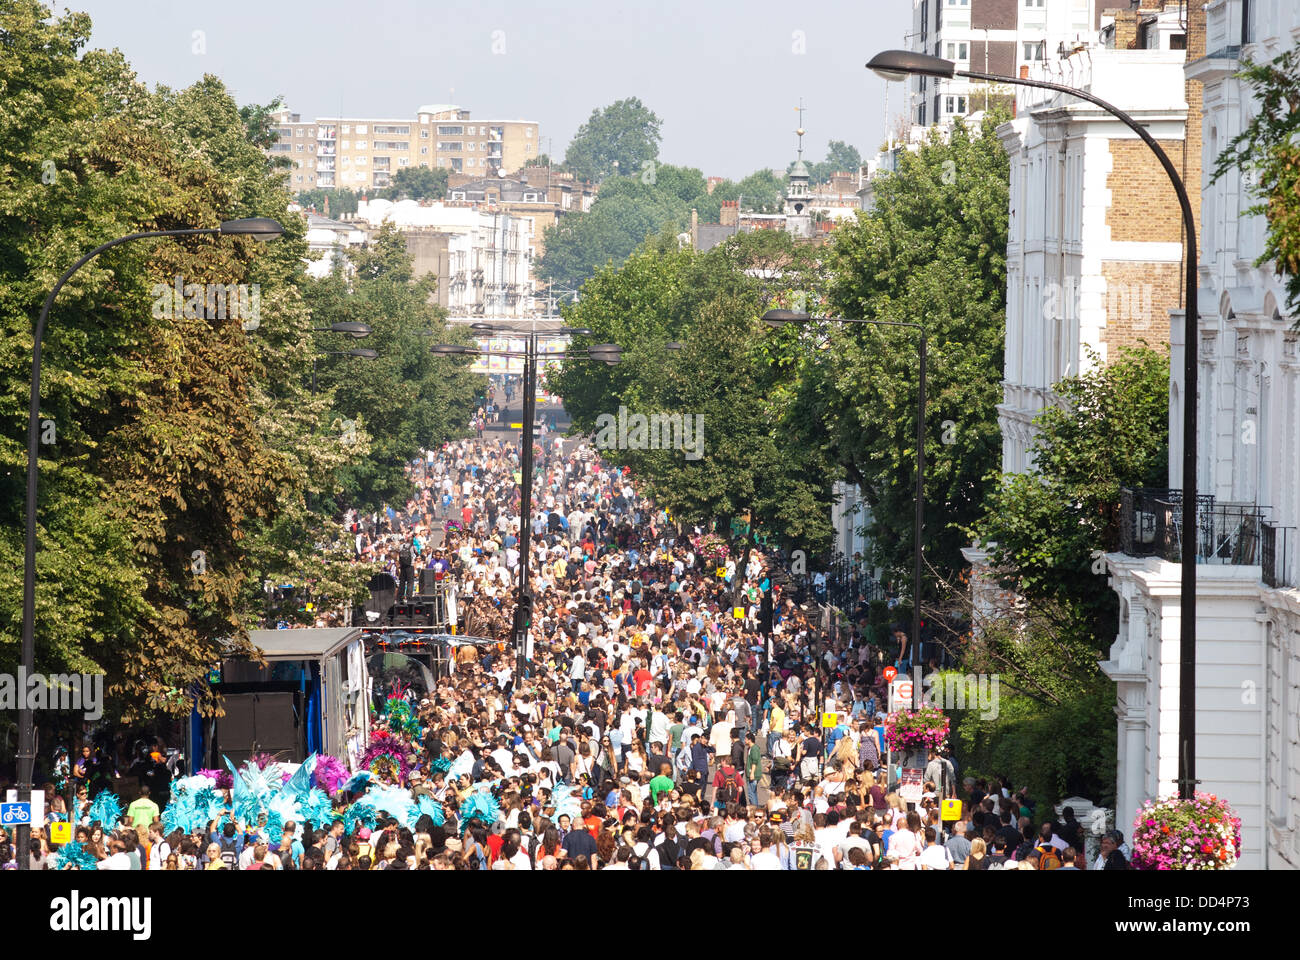 London, UK. 26th Aug, 2013. Thousands take part in the annual parade at the Notting Hill Carnival. Credit:  Piero - Stock Image